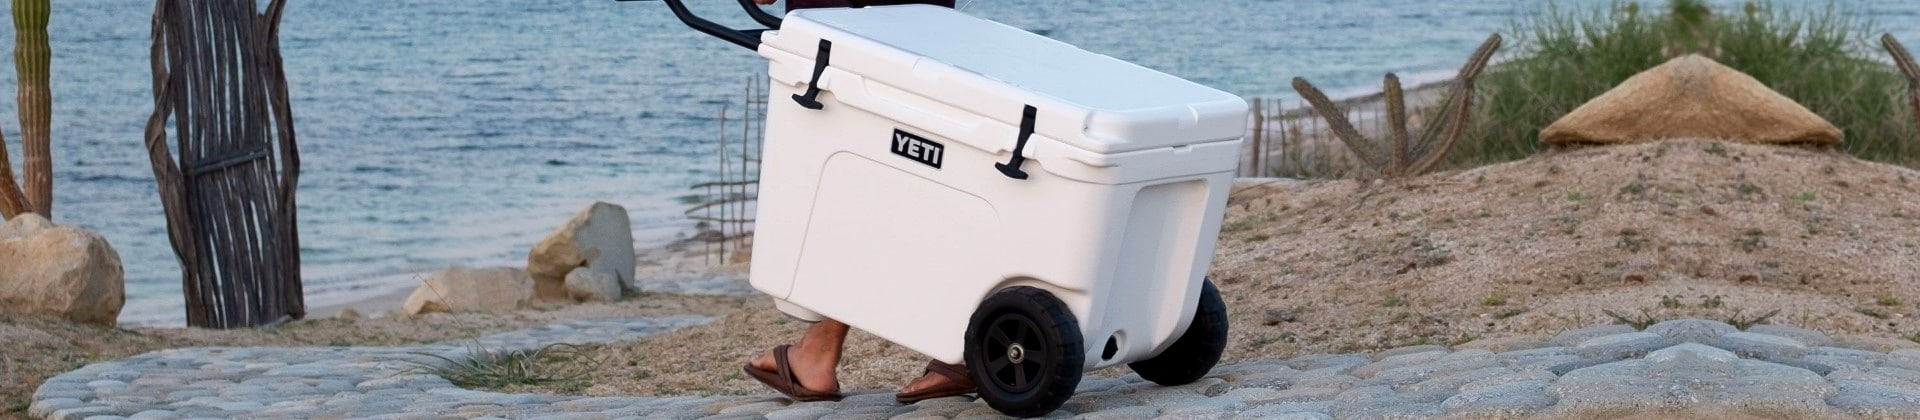 Best Coolers with Wheels Reviewed in Detail